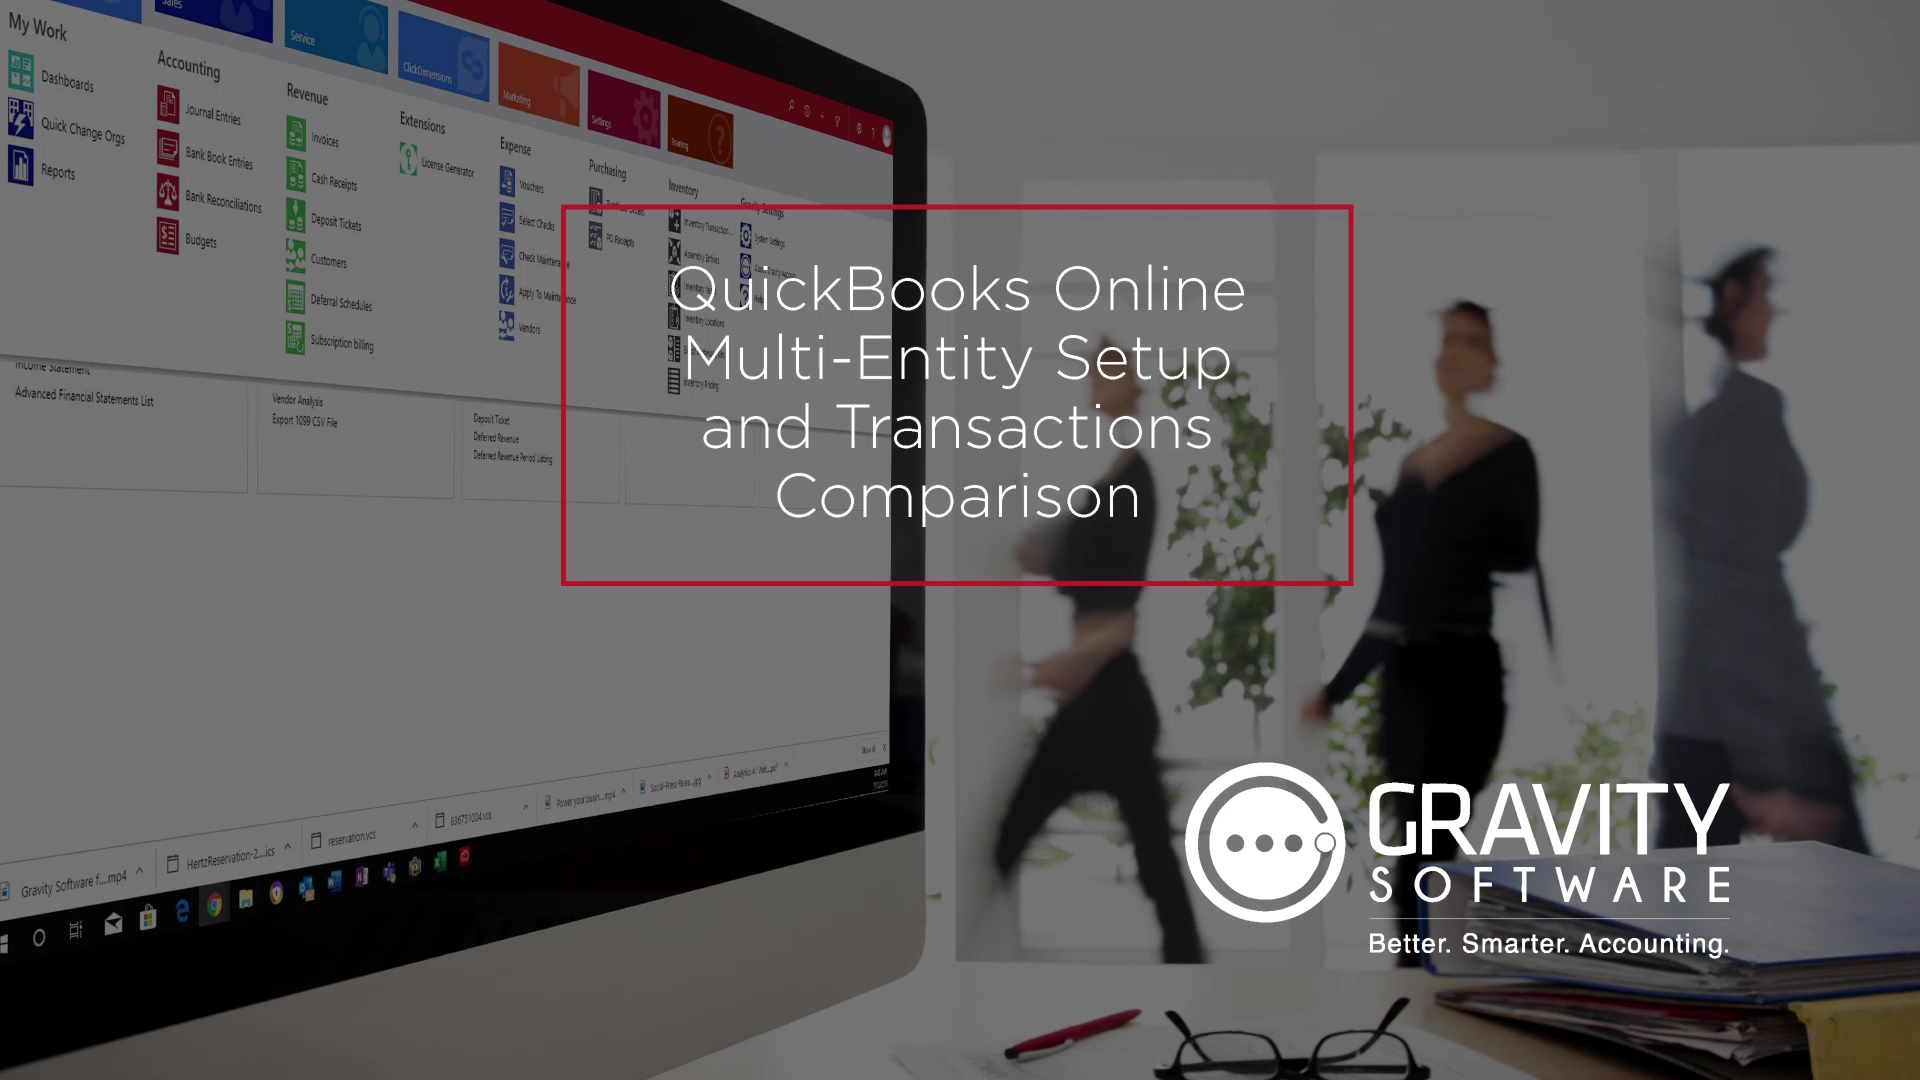 Gravity Software and QuickBooks Online Multi-Entity Setup and Transactions Comparisons